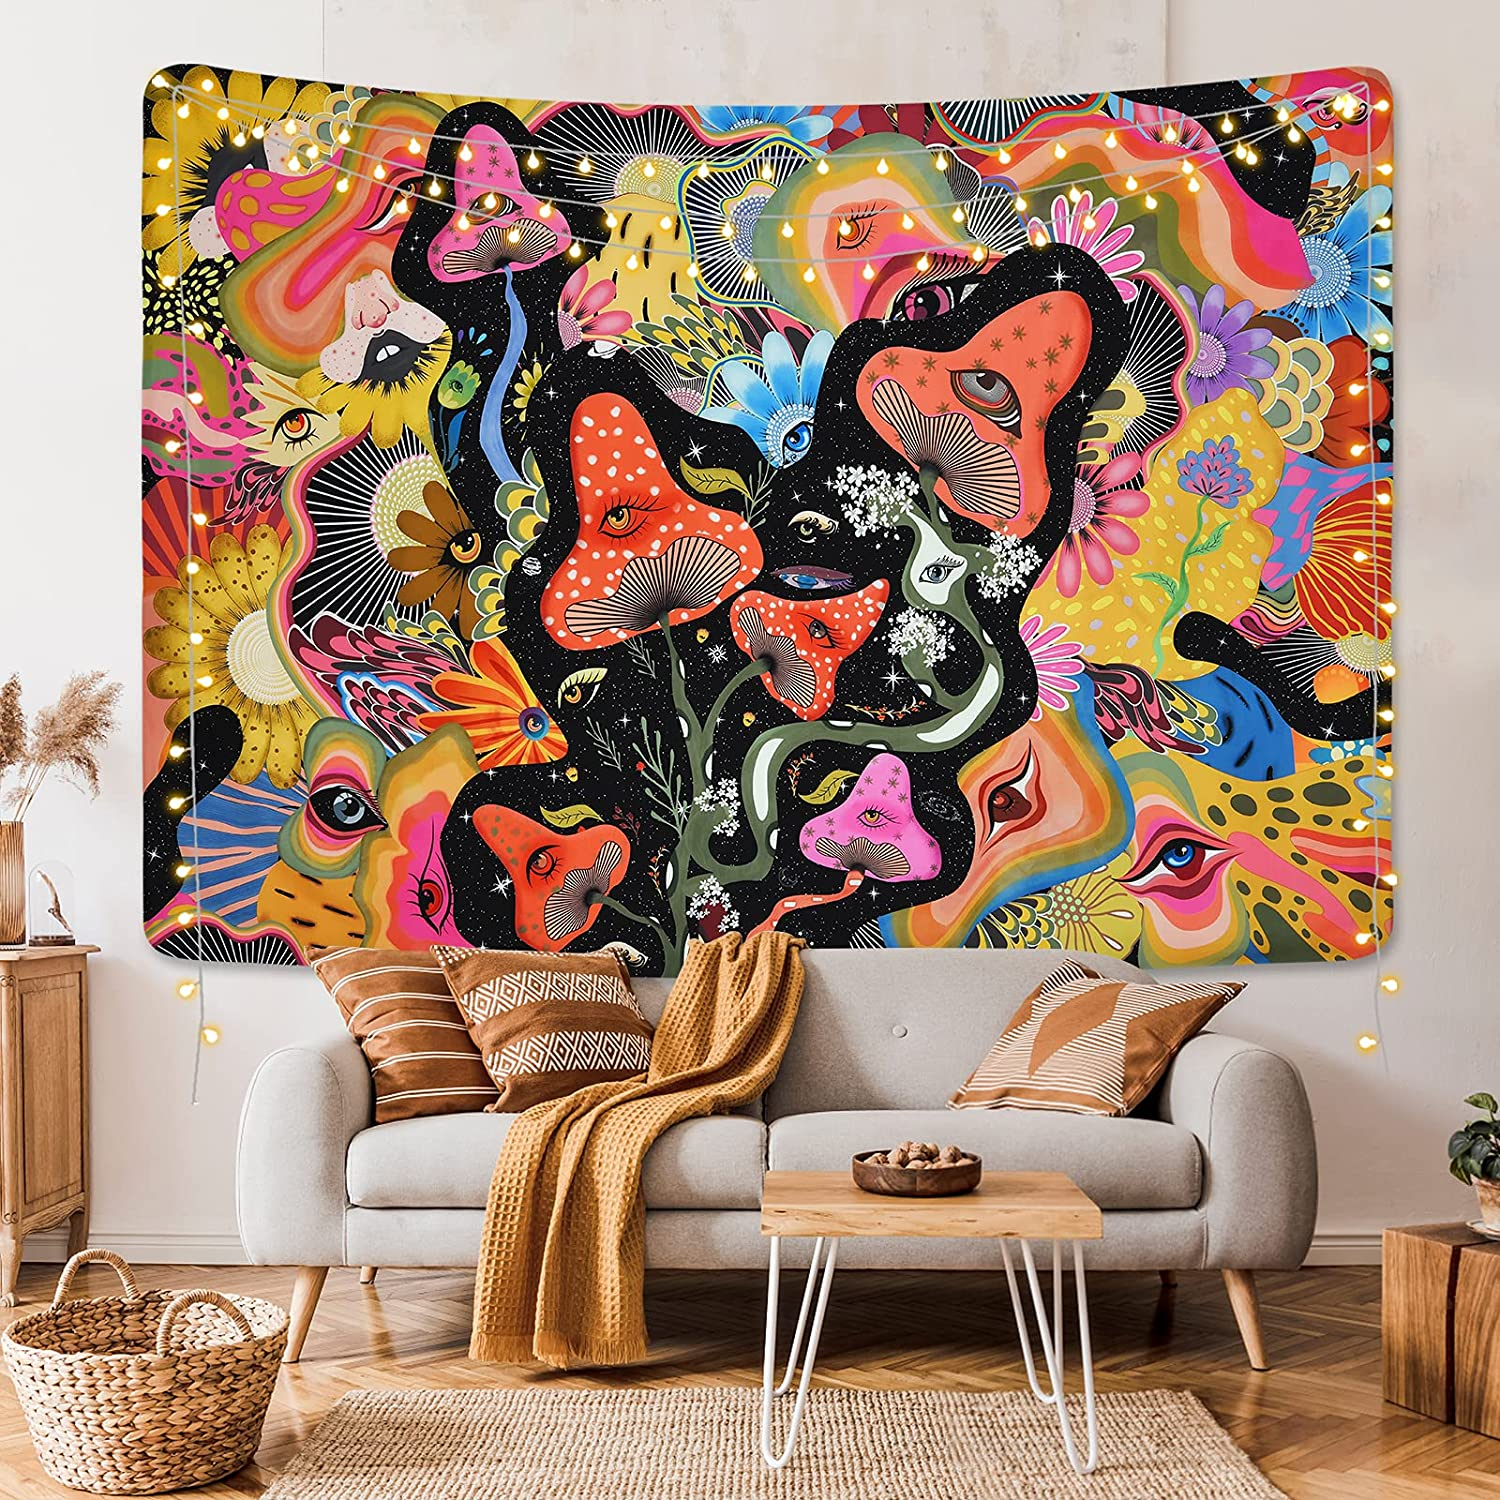 Mushroom Tapestry Psychedelic Eyes Tapestries Trippy Tapestry Colorful Flowers Tapestry Wall Hanging for Room(59.1 x 59.1 inches)